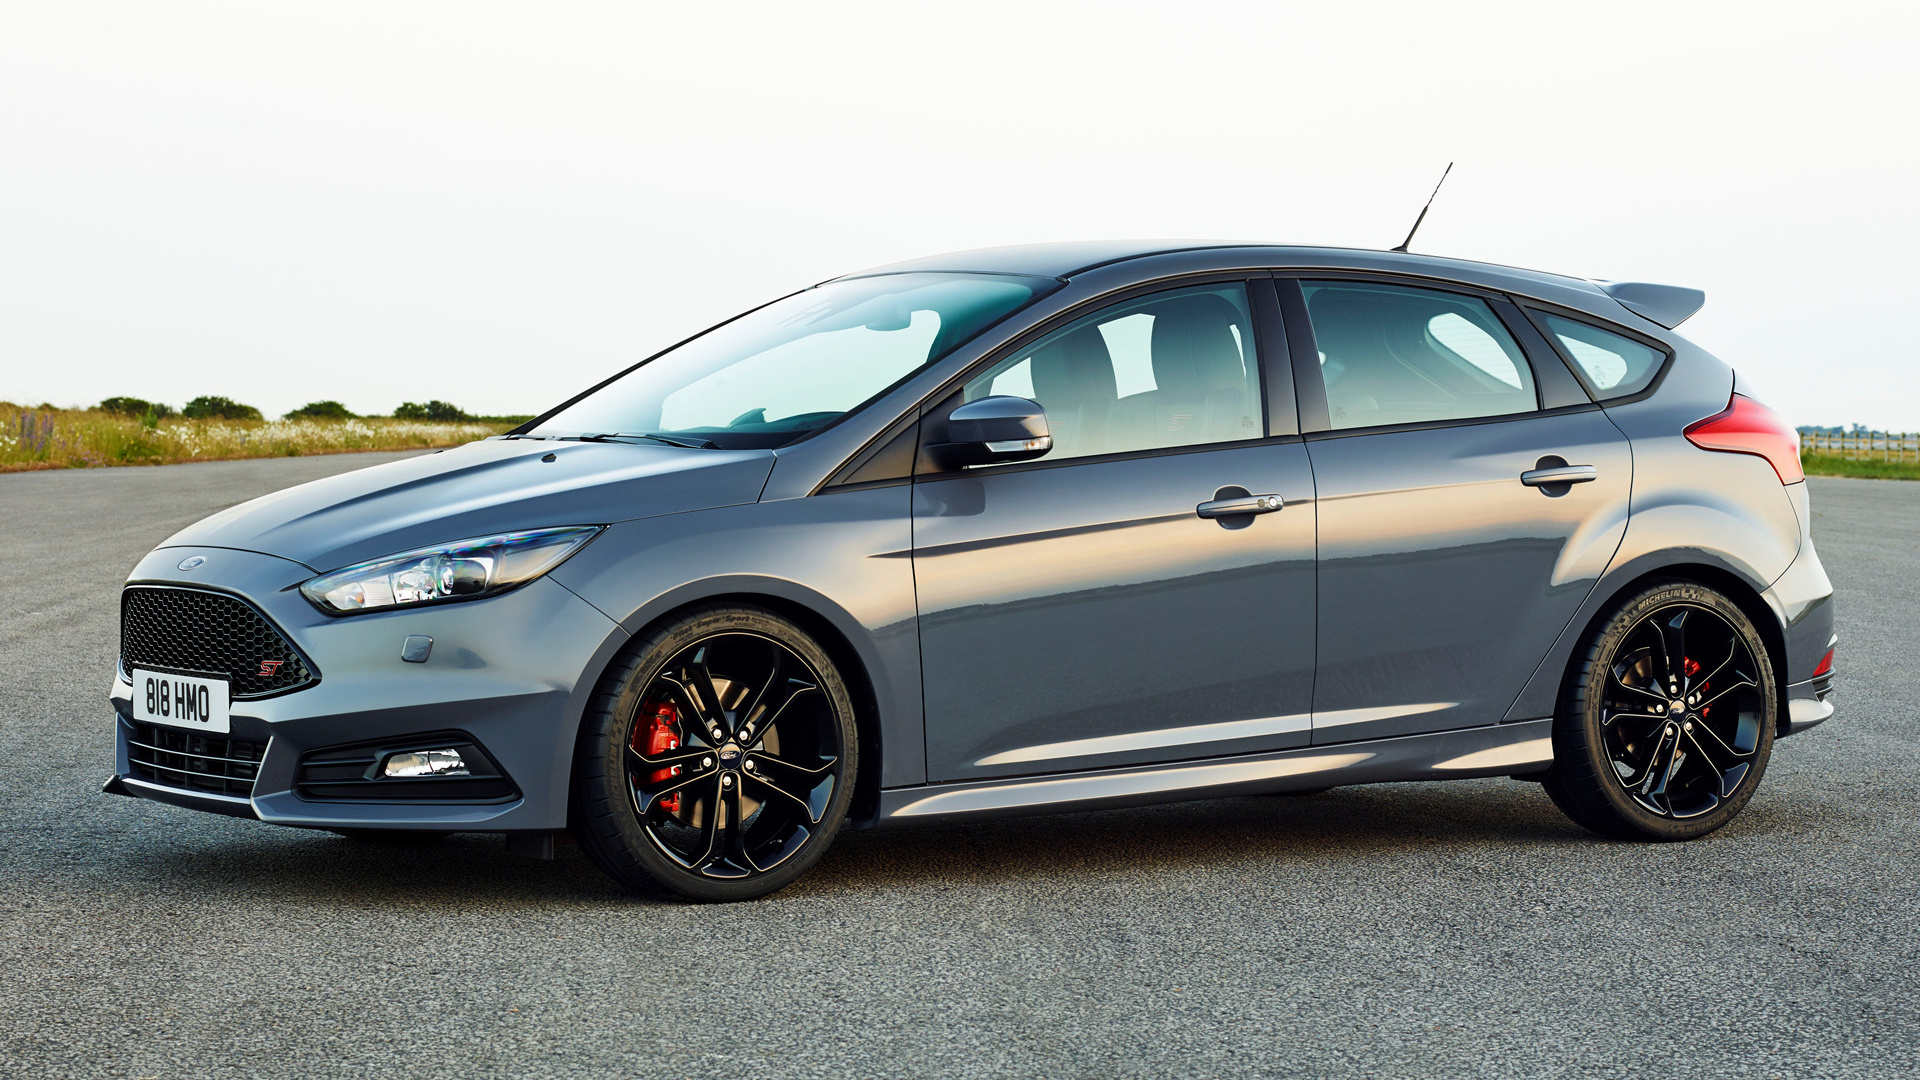 ford focus st 2014 wallpapers and hd images car pixel